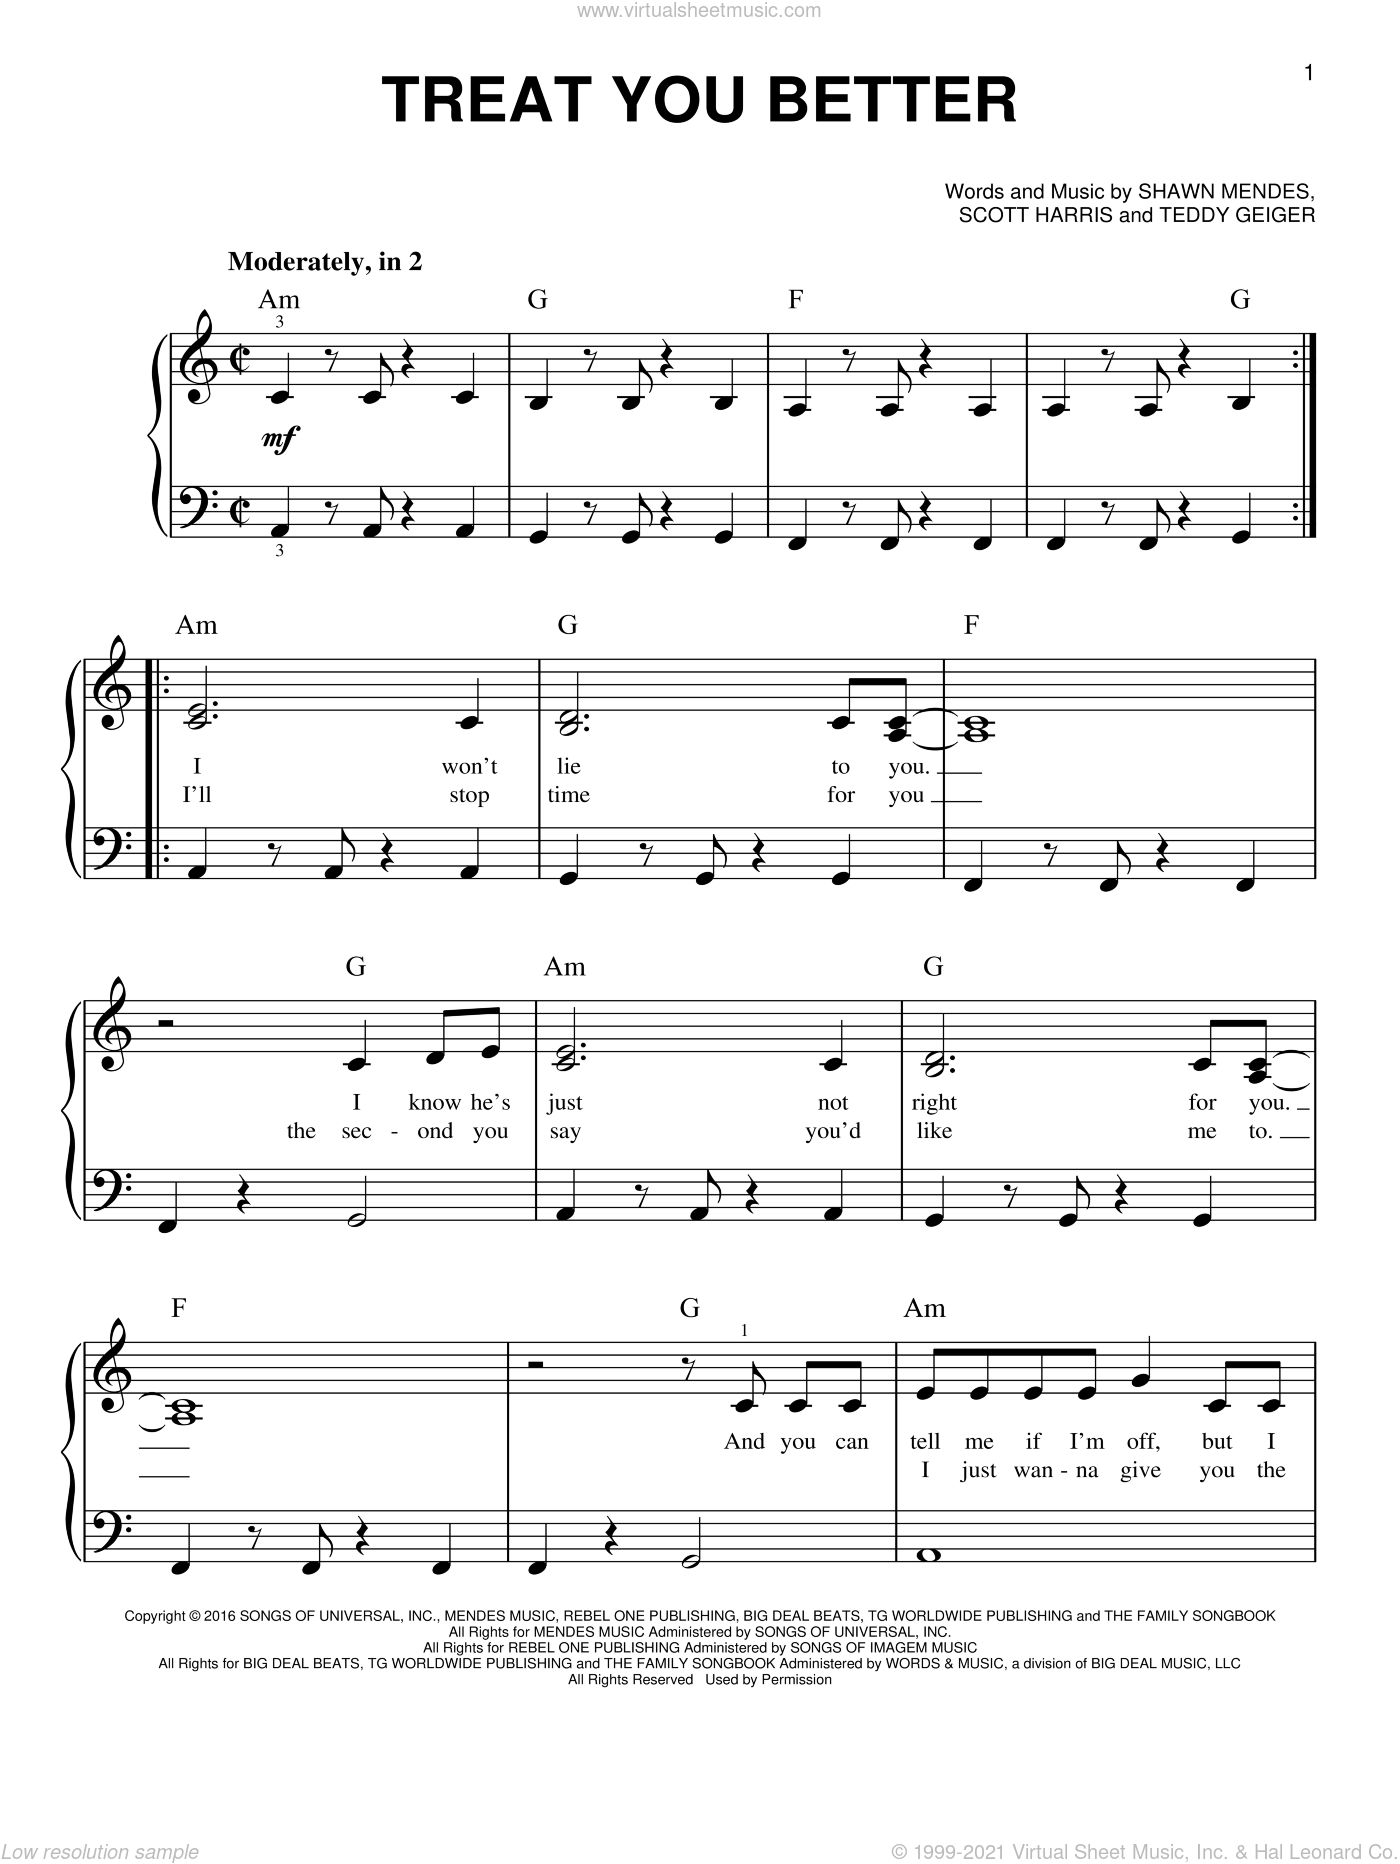 Treat You Better, (beginner) sheet music for piano solo by Shawn Mendes, Scott Harris and Teddy Geiger, beginner skill level